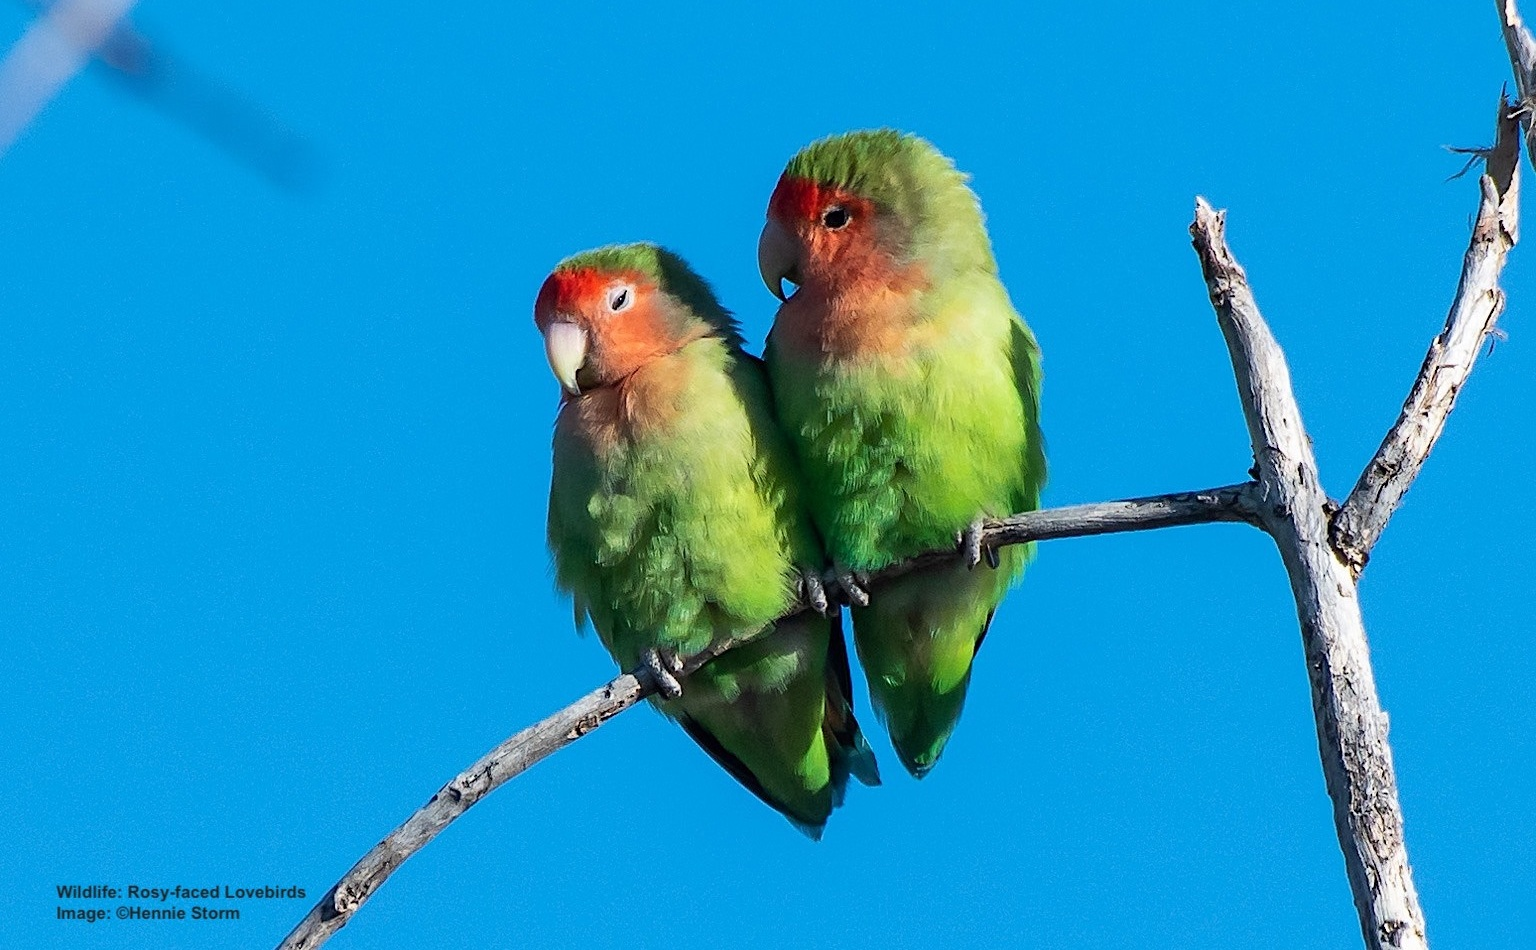 LOVE BIRDS LIVE UP TO THEIR NAME, PREFERRING TO LIVE IN FLOCKS, FEEDING EACH OTHER, CUDDLING, AND MATING FOR LIFE. IMAGE:  ©HENNIE STORM